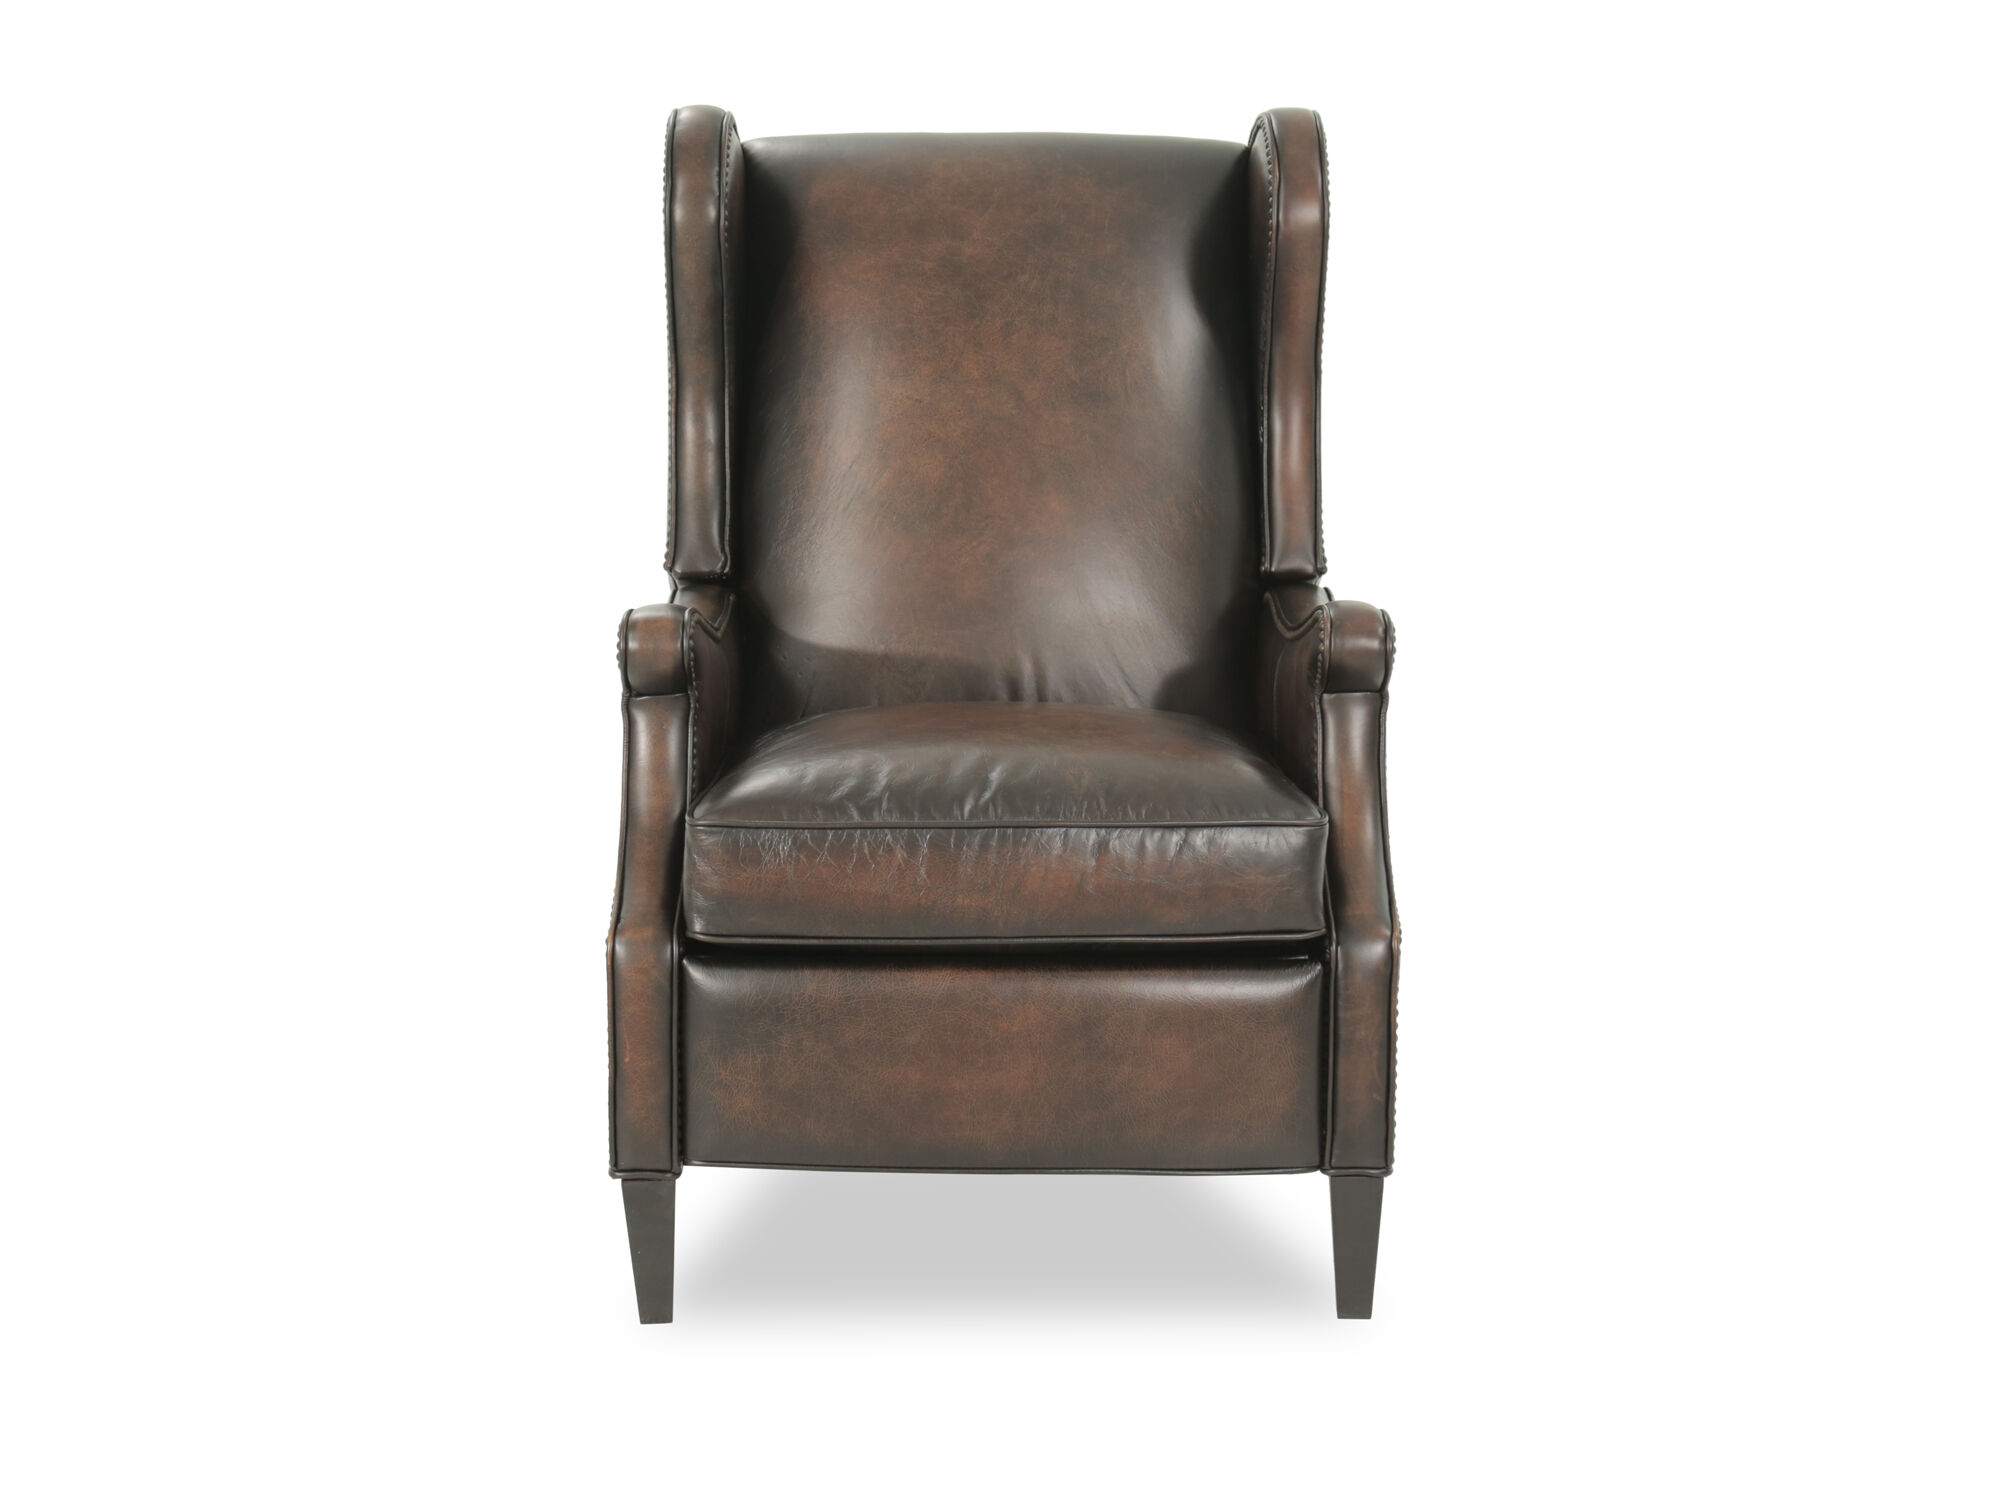 Bernhardt Nikki Leather Brown Recliner  sc 1 st  Mathis Brothers & Bernhardt Nikki Leather Brown Recliner | Mathis Brothers Furniture islam-shia.org